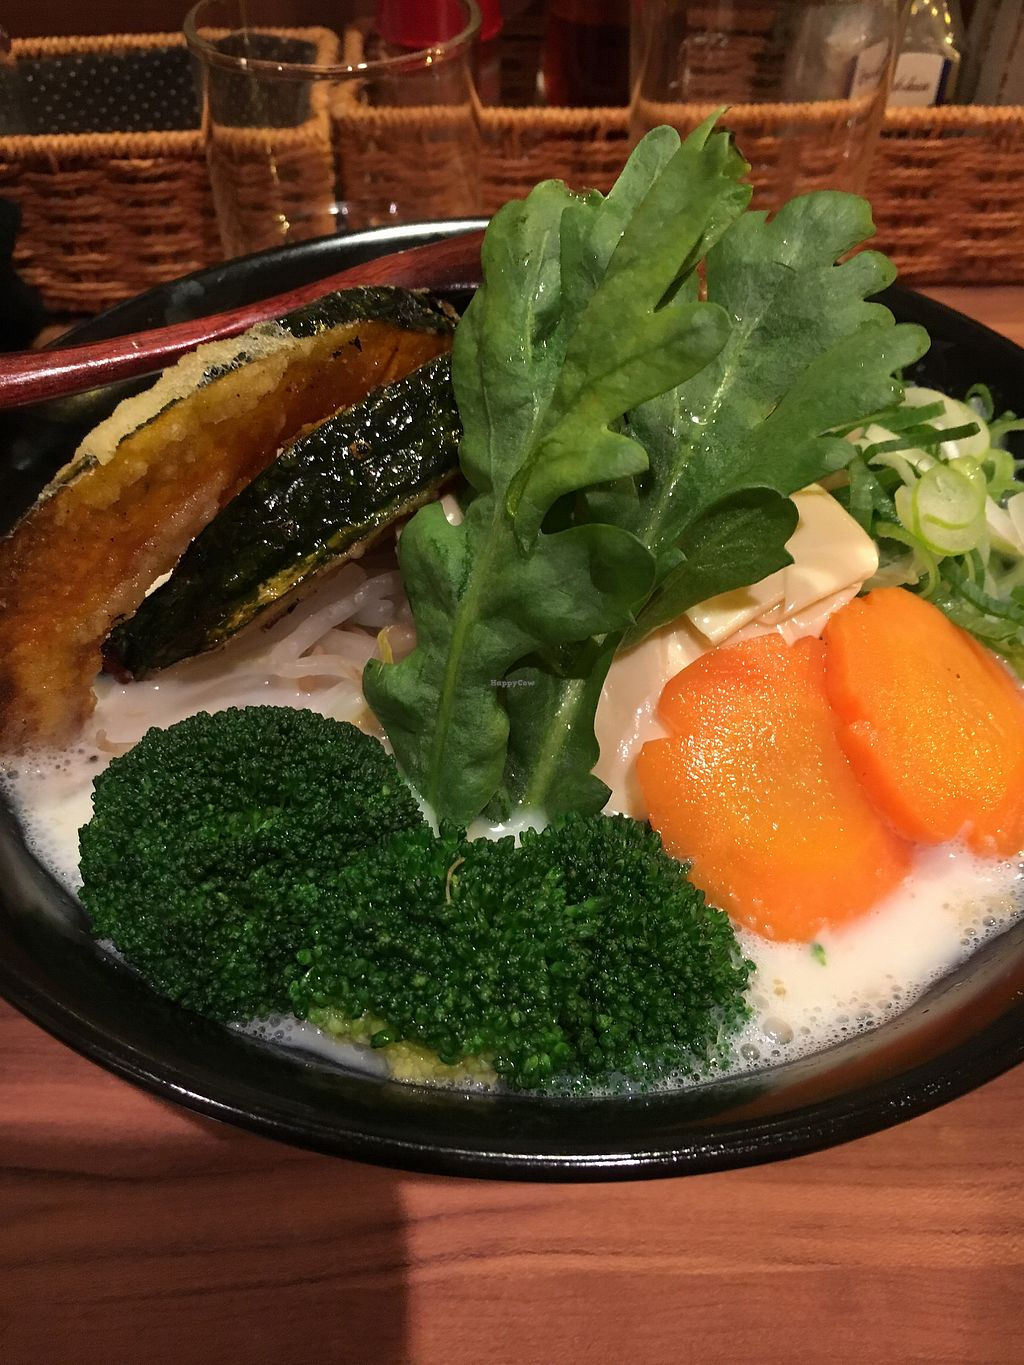 """Photo of Ramen Sen No Kaze  by <a href=""""/members/profile/LaurenJumikis"""">LaurenJumikis</a> <br/>Soy based ramen <br/> February 15, 2018  - <a href='/contact/abuse/image/111143/359799'>Report</a>"""